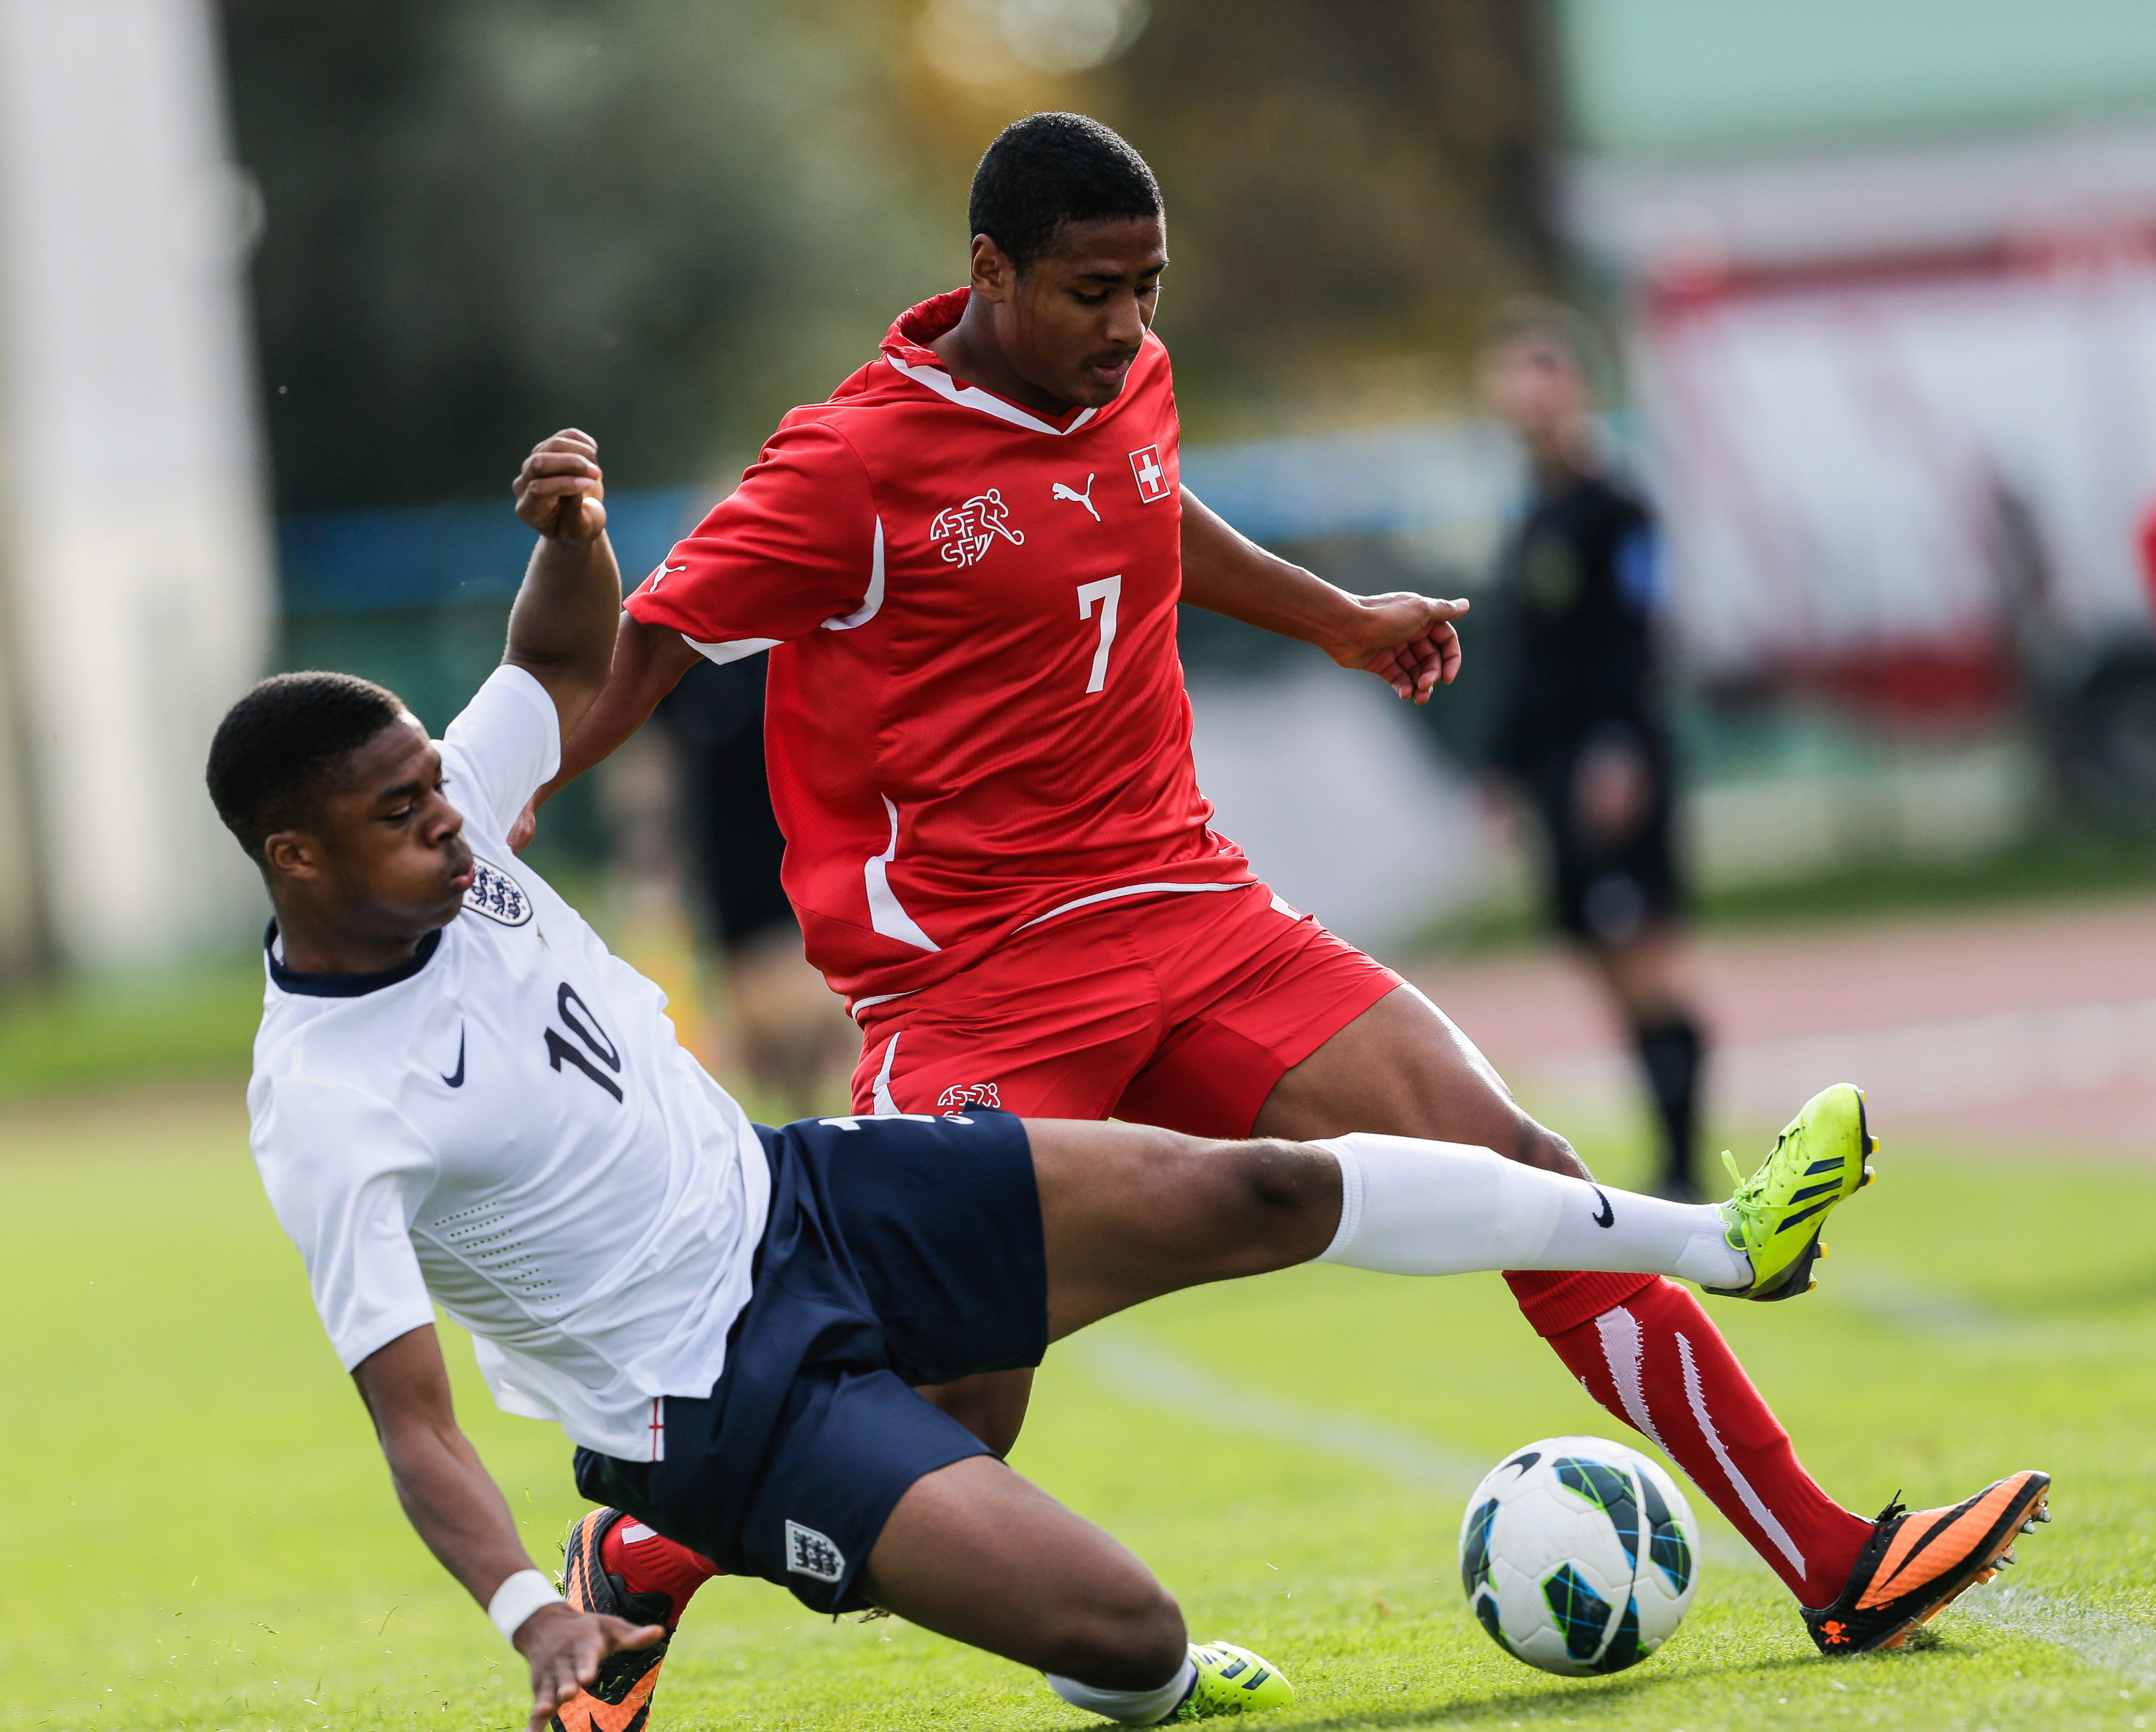 Saidy Janko (right) put in a man-of-the-match performance on his professional debut